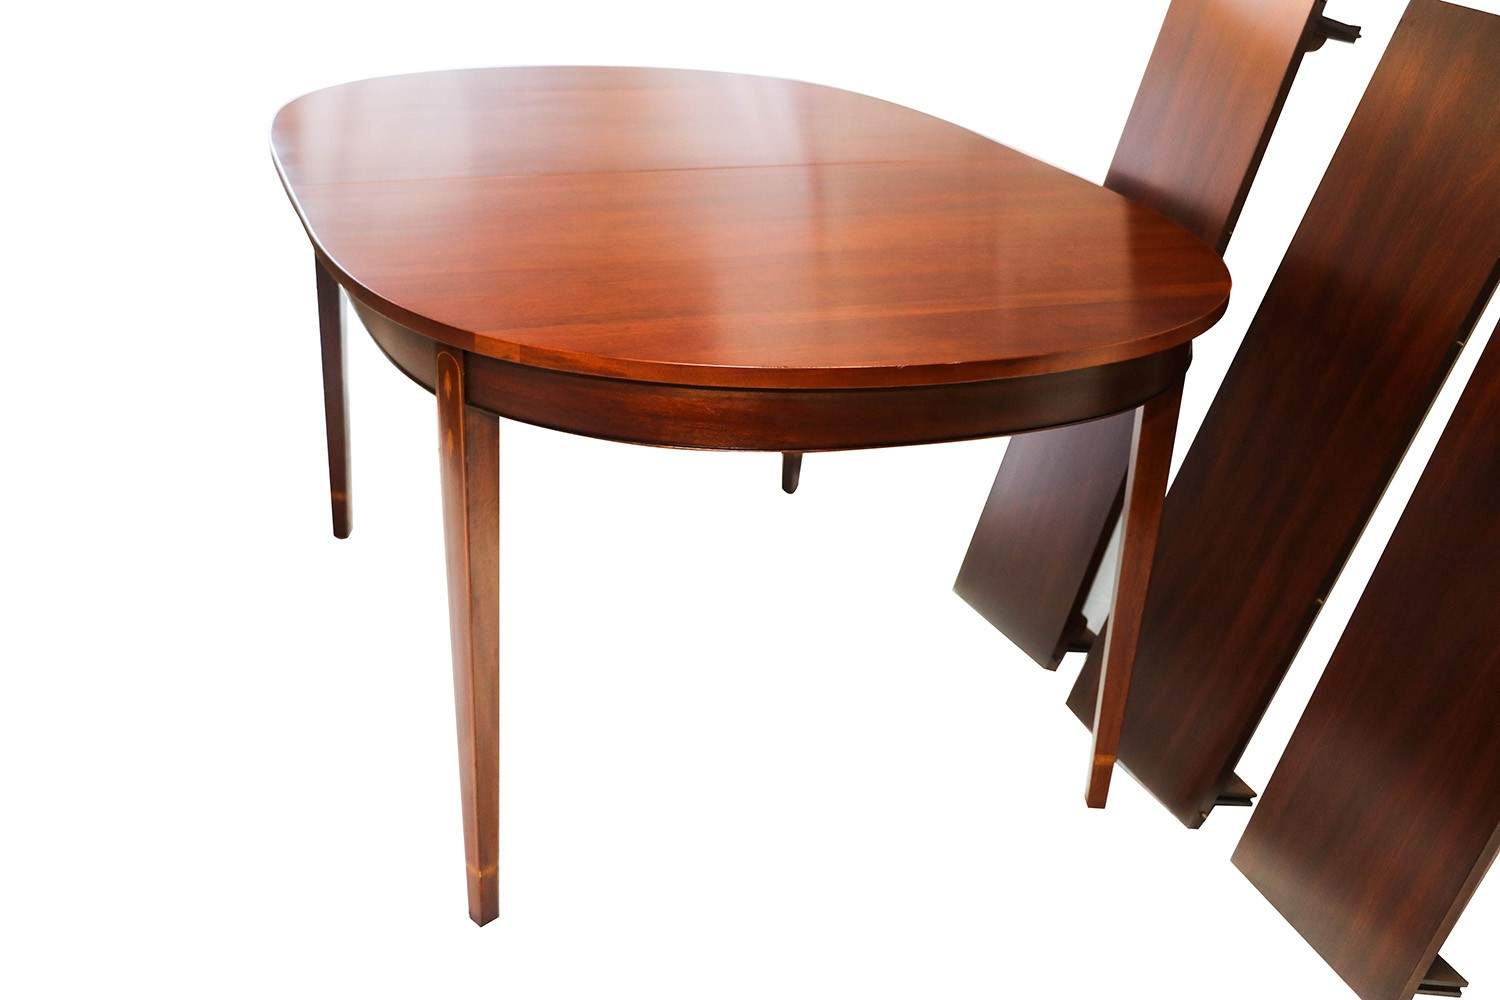 Henkel harris inlaid mahogany oval dining table for Oval dining table